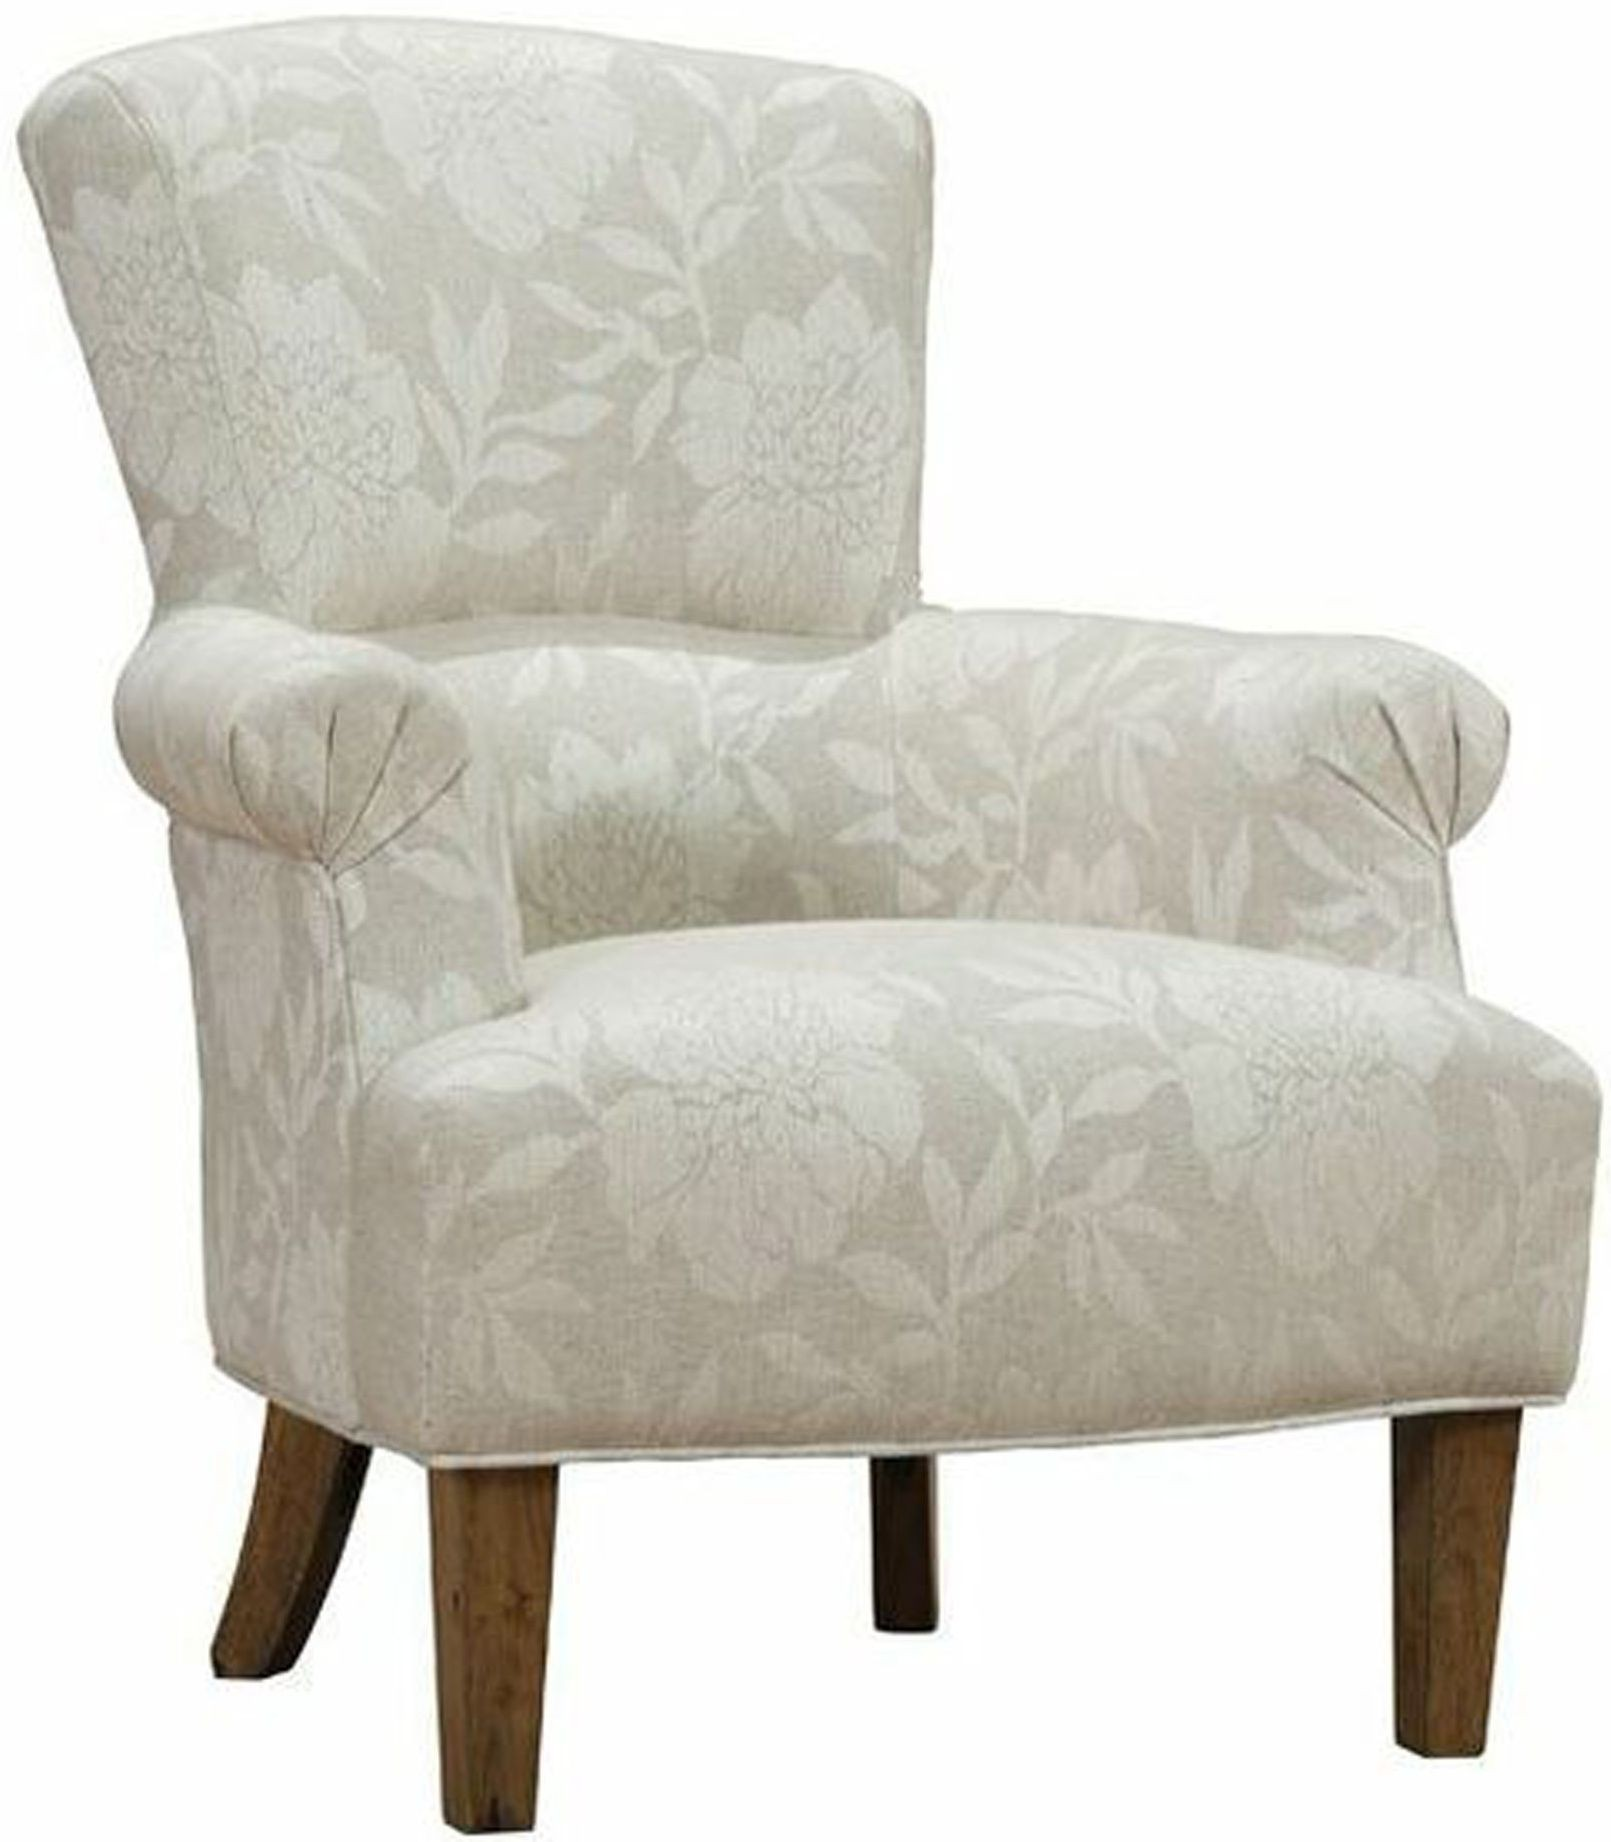 Cream Accent Chair Barstow Cream Flower Fabric Accent Chair From Armen Living